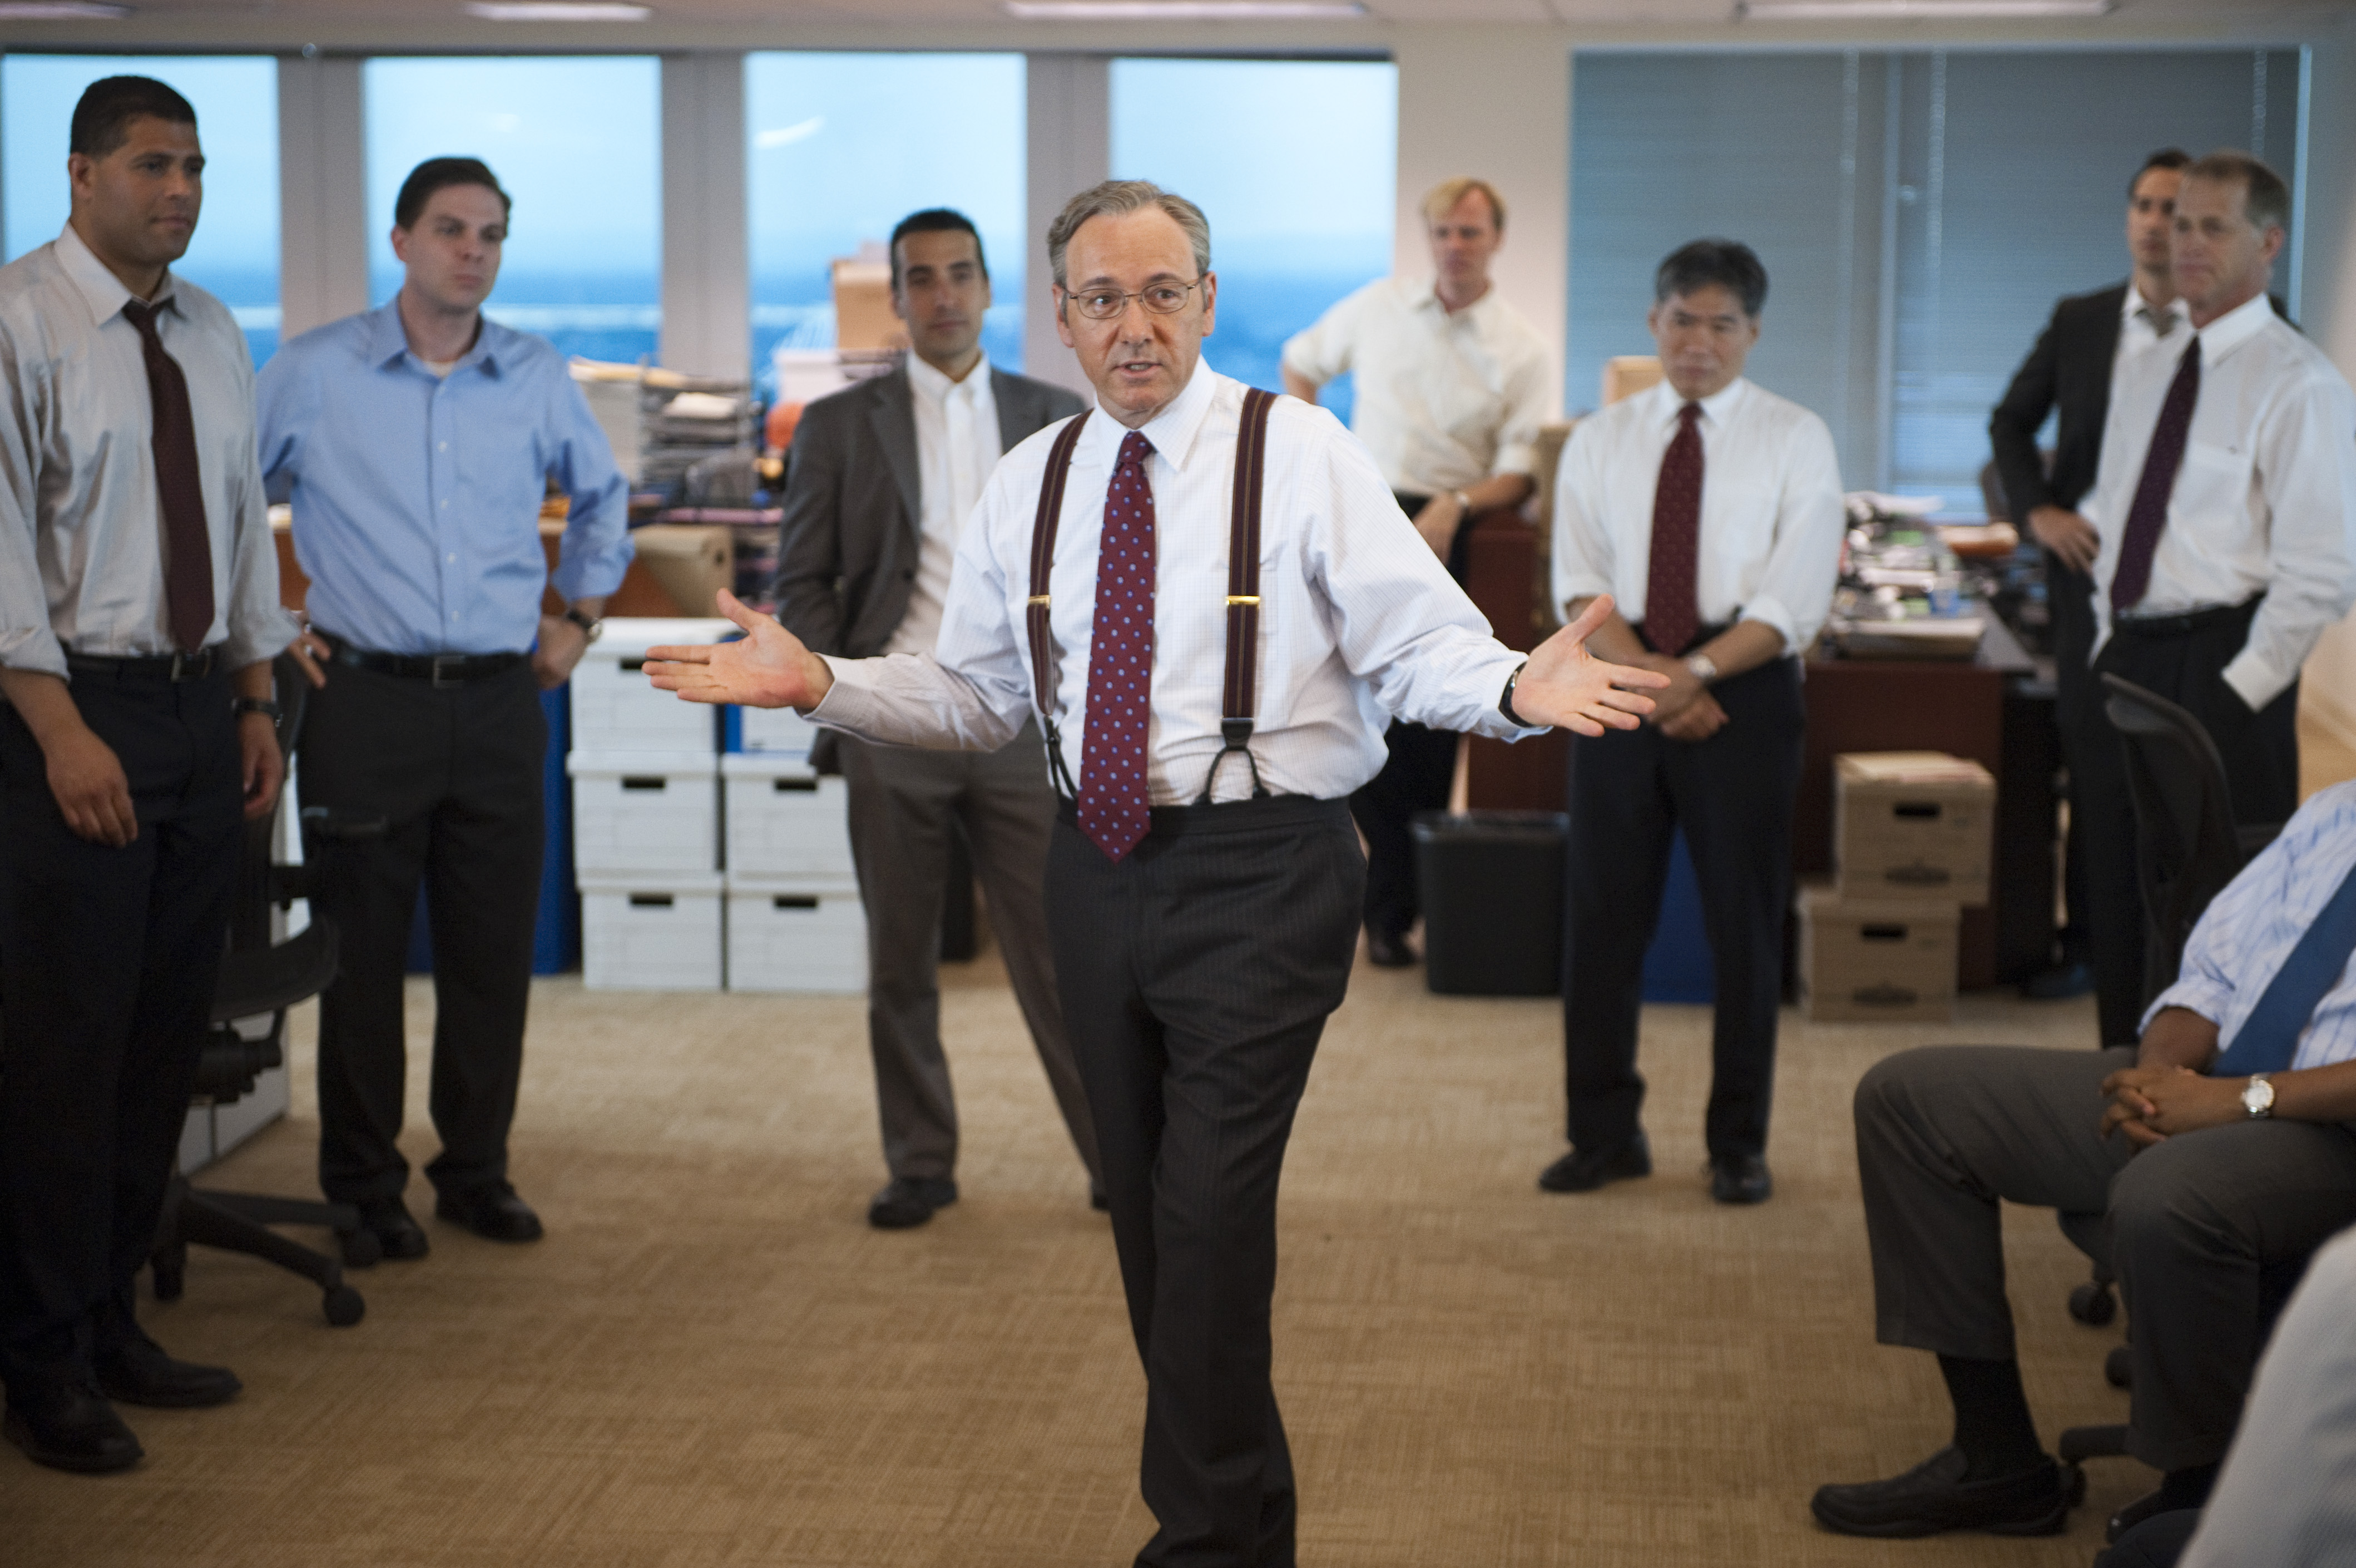 a movie analysis of margin call This film margin call gives a fascinating financial institutional view into the birth of the gfc what are the consequences of their actions.